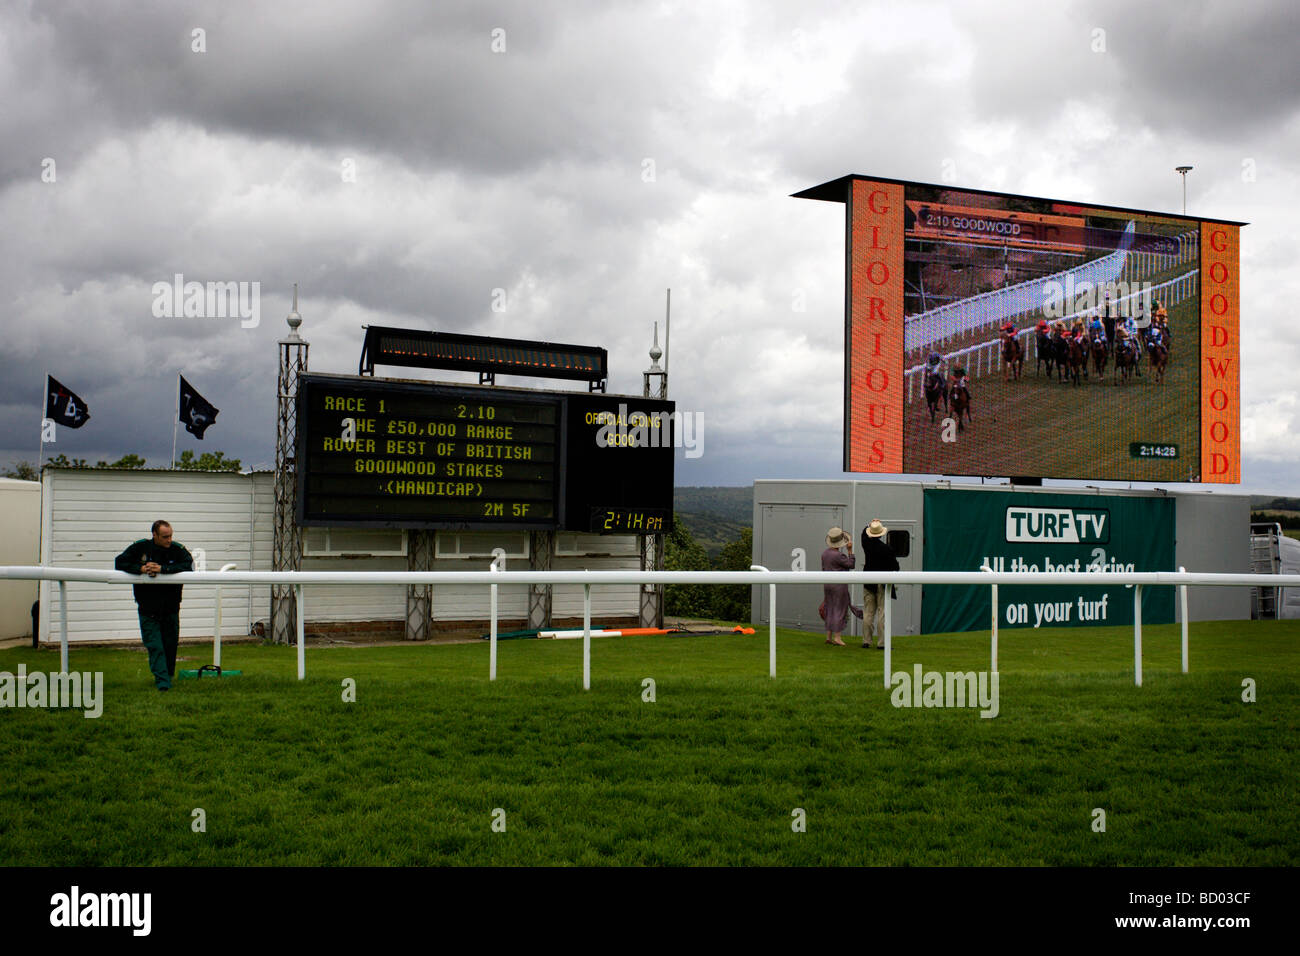 View of the big screen during the 2.10pm first race of the day at Glorious Goodwood, West Sussex. - Stock Image